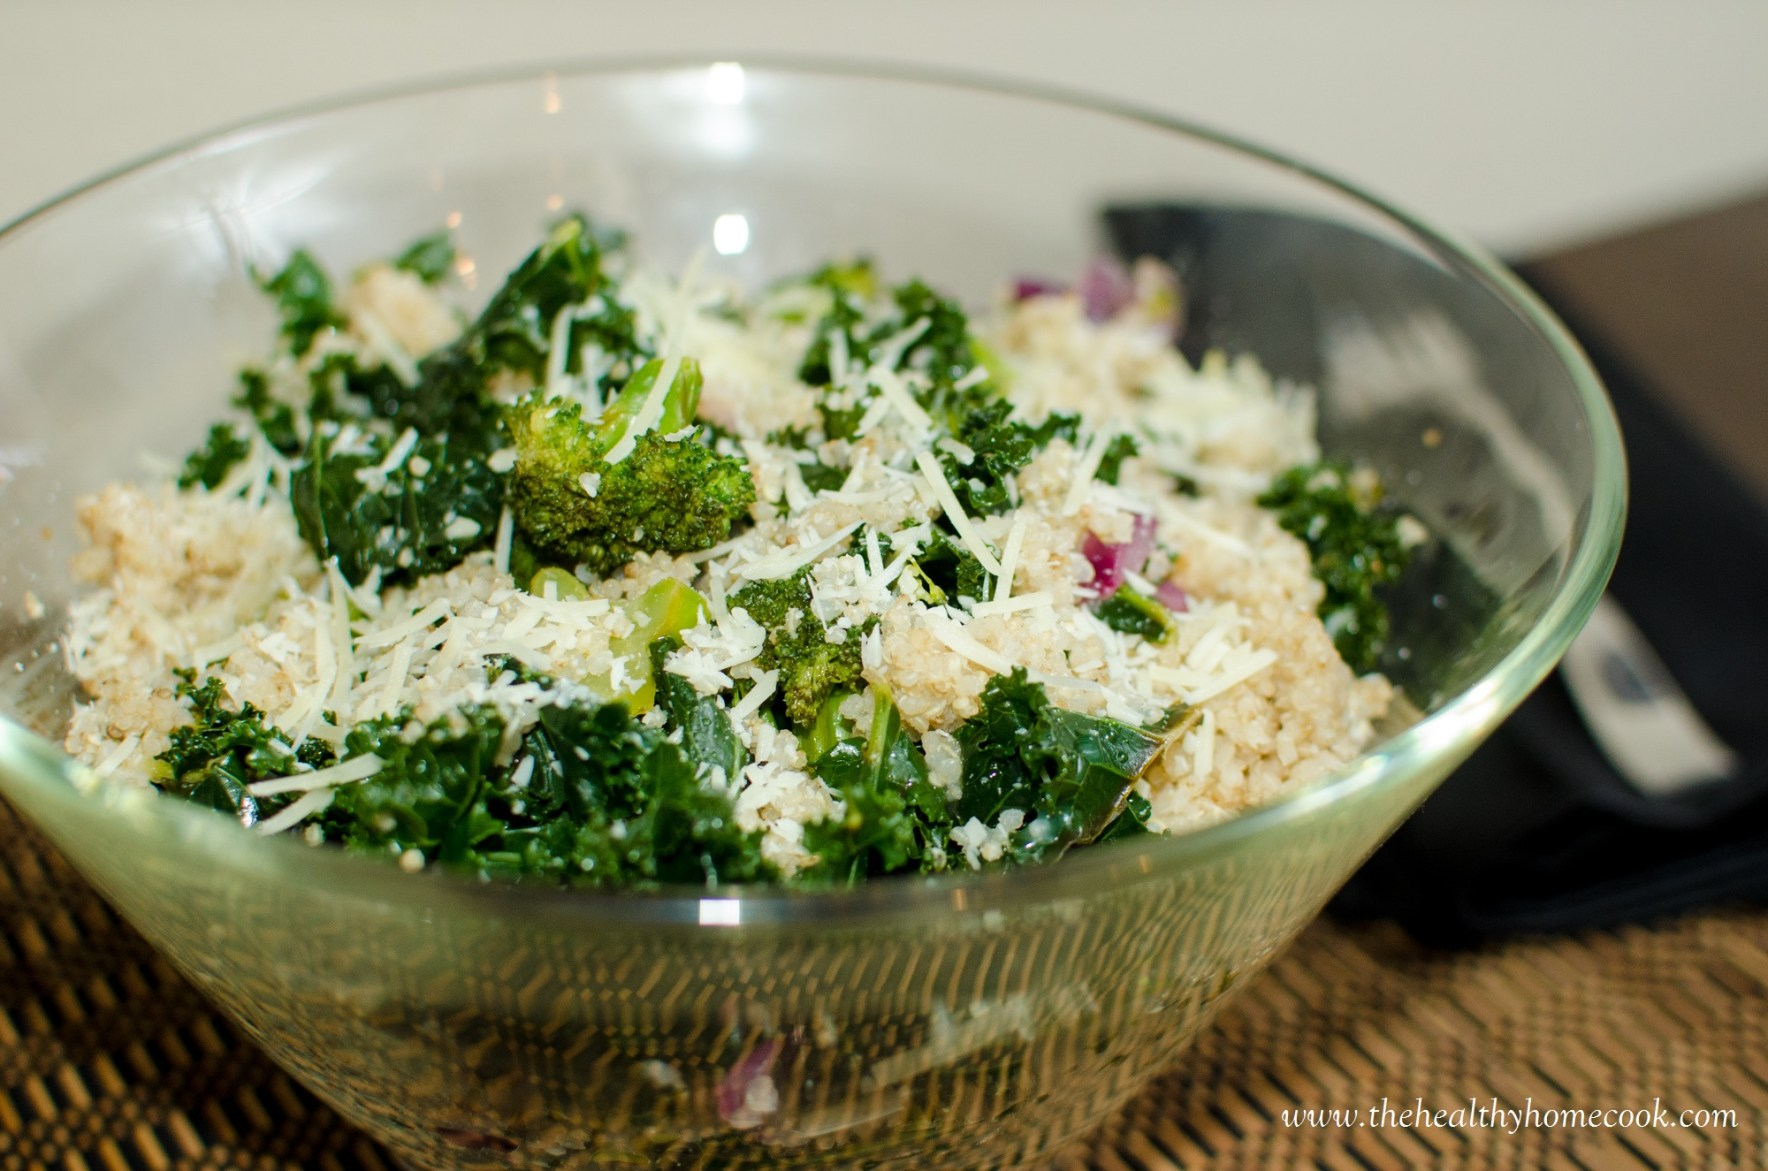 There are so many ways you can enjoy kale, from soups to smoothies and salads. But, one of my favorite ways to prepare kale is combining it with broccoli and quinoa to create a light, lemony salad.